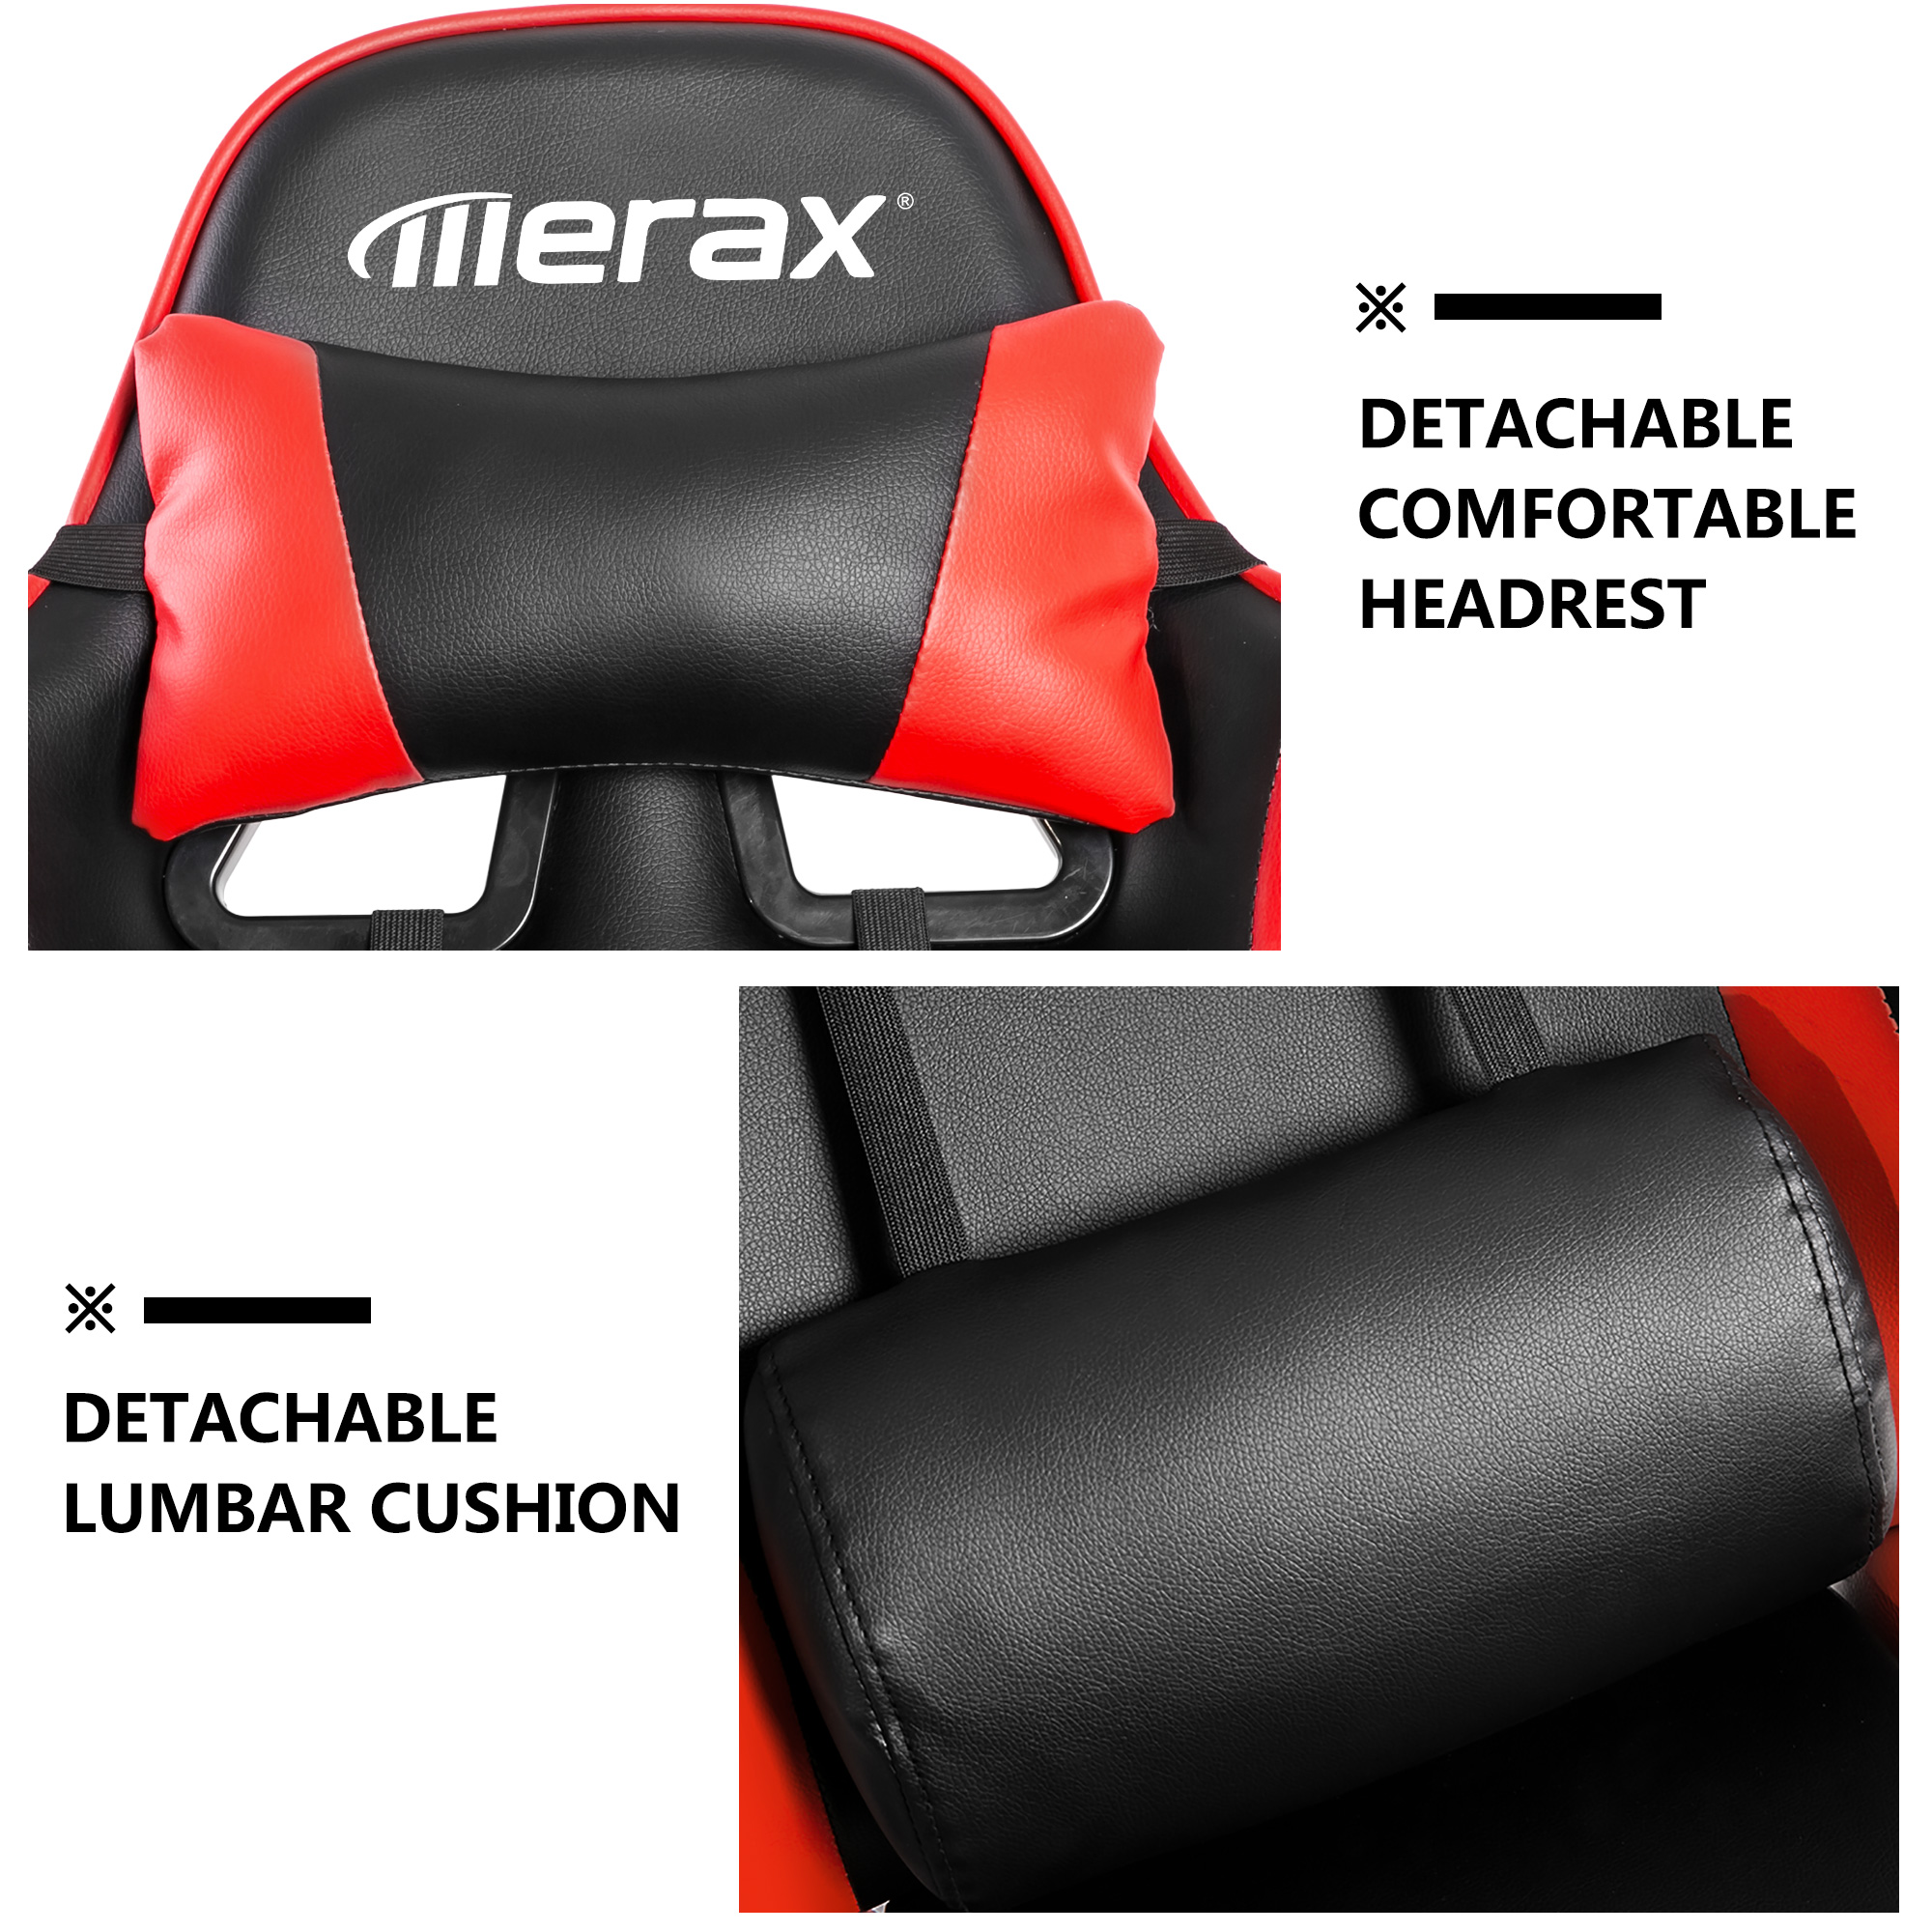 Interior Accessories Winter Warm Plush Lumbar Cushion For Car Lumbar Support For Office Chairwith Flowers Girls Women Cute Automobiles & Motorcycles